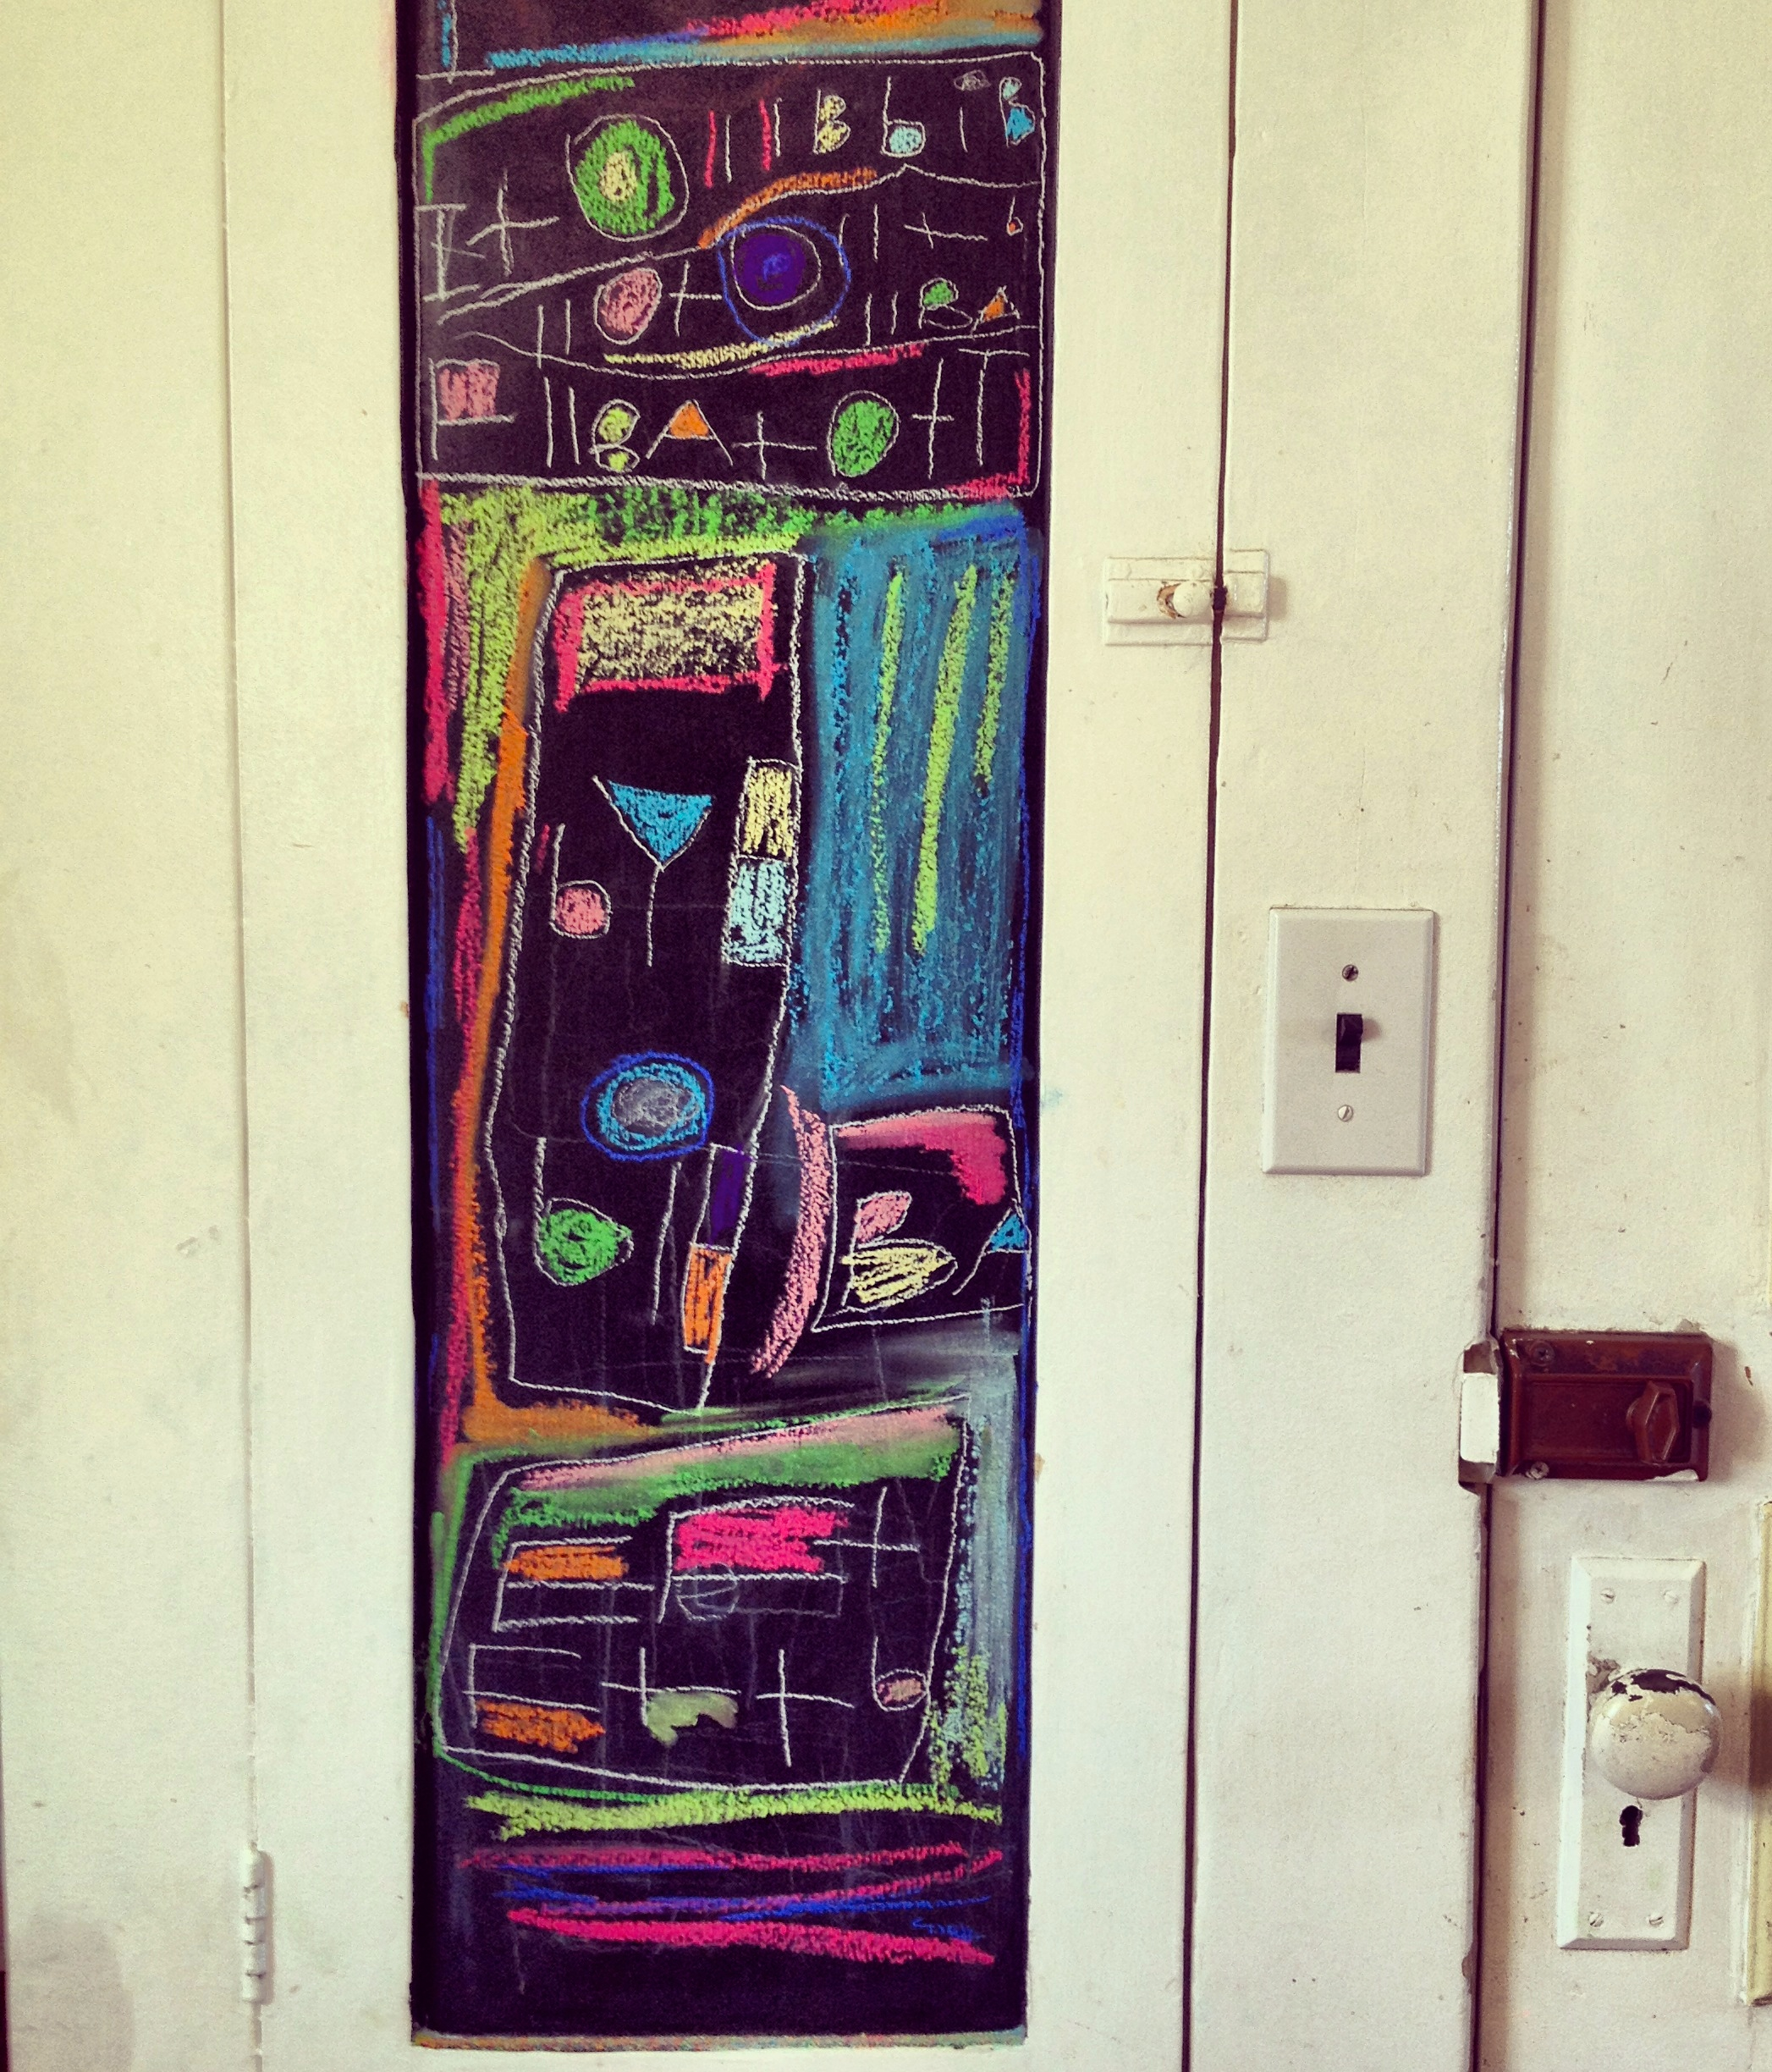 The spice cabinet, which we painted with chalkboard paint.